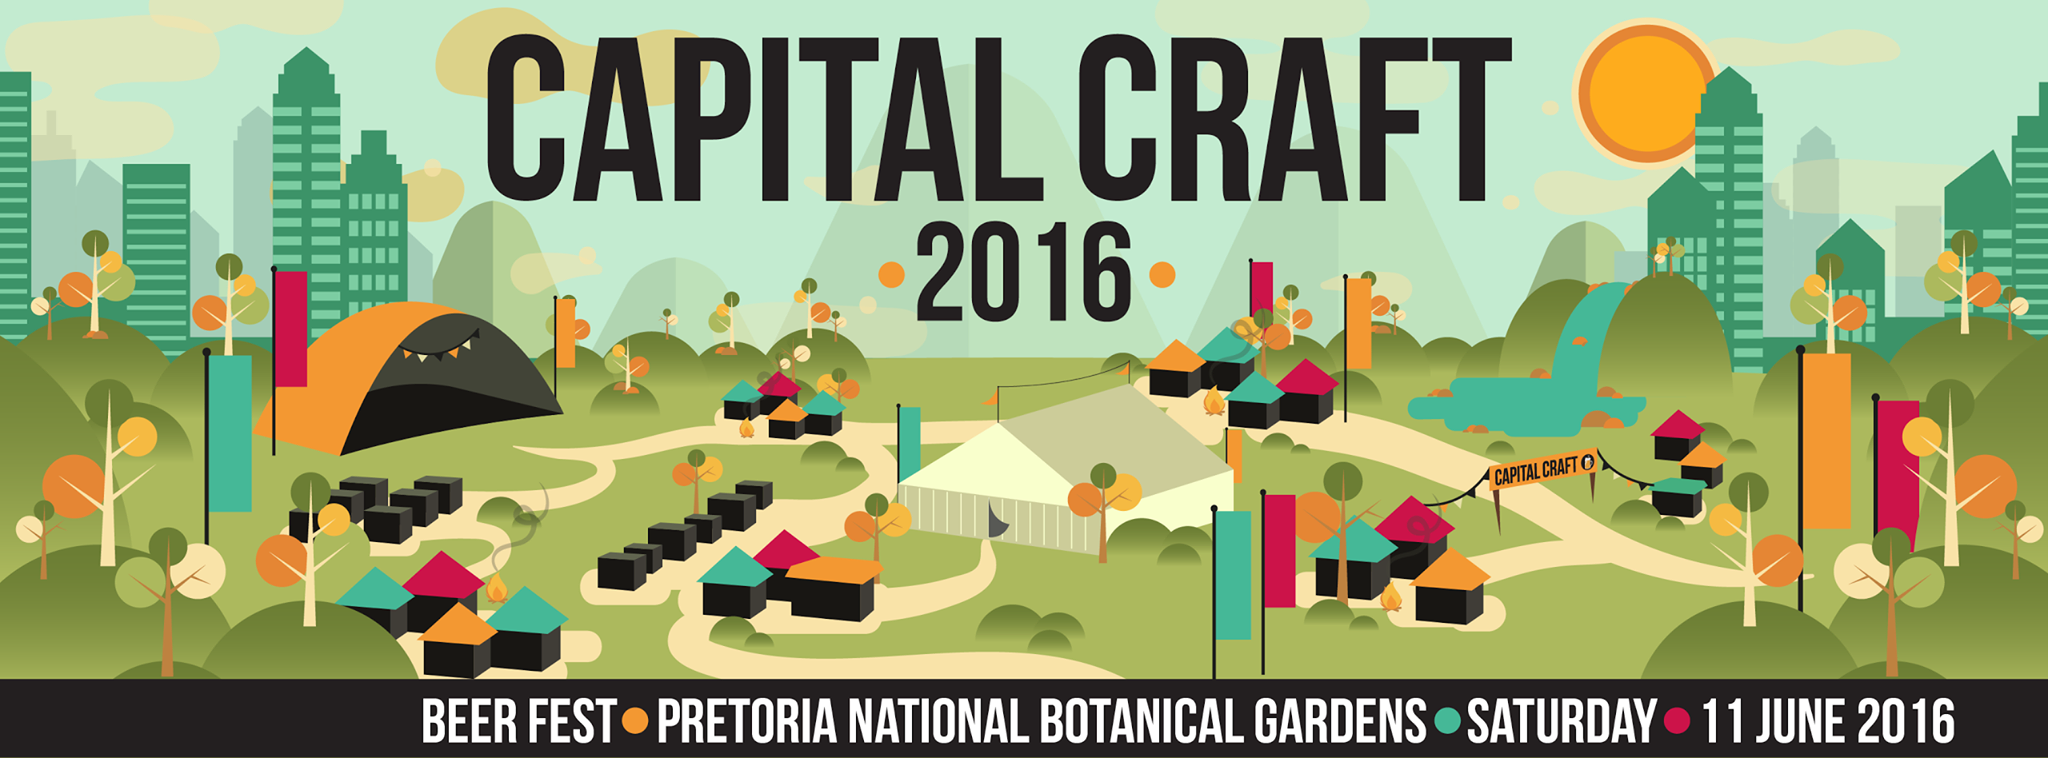 Capital Craft Beer Festival 2016